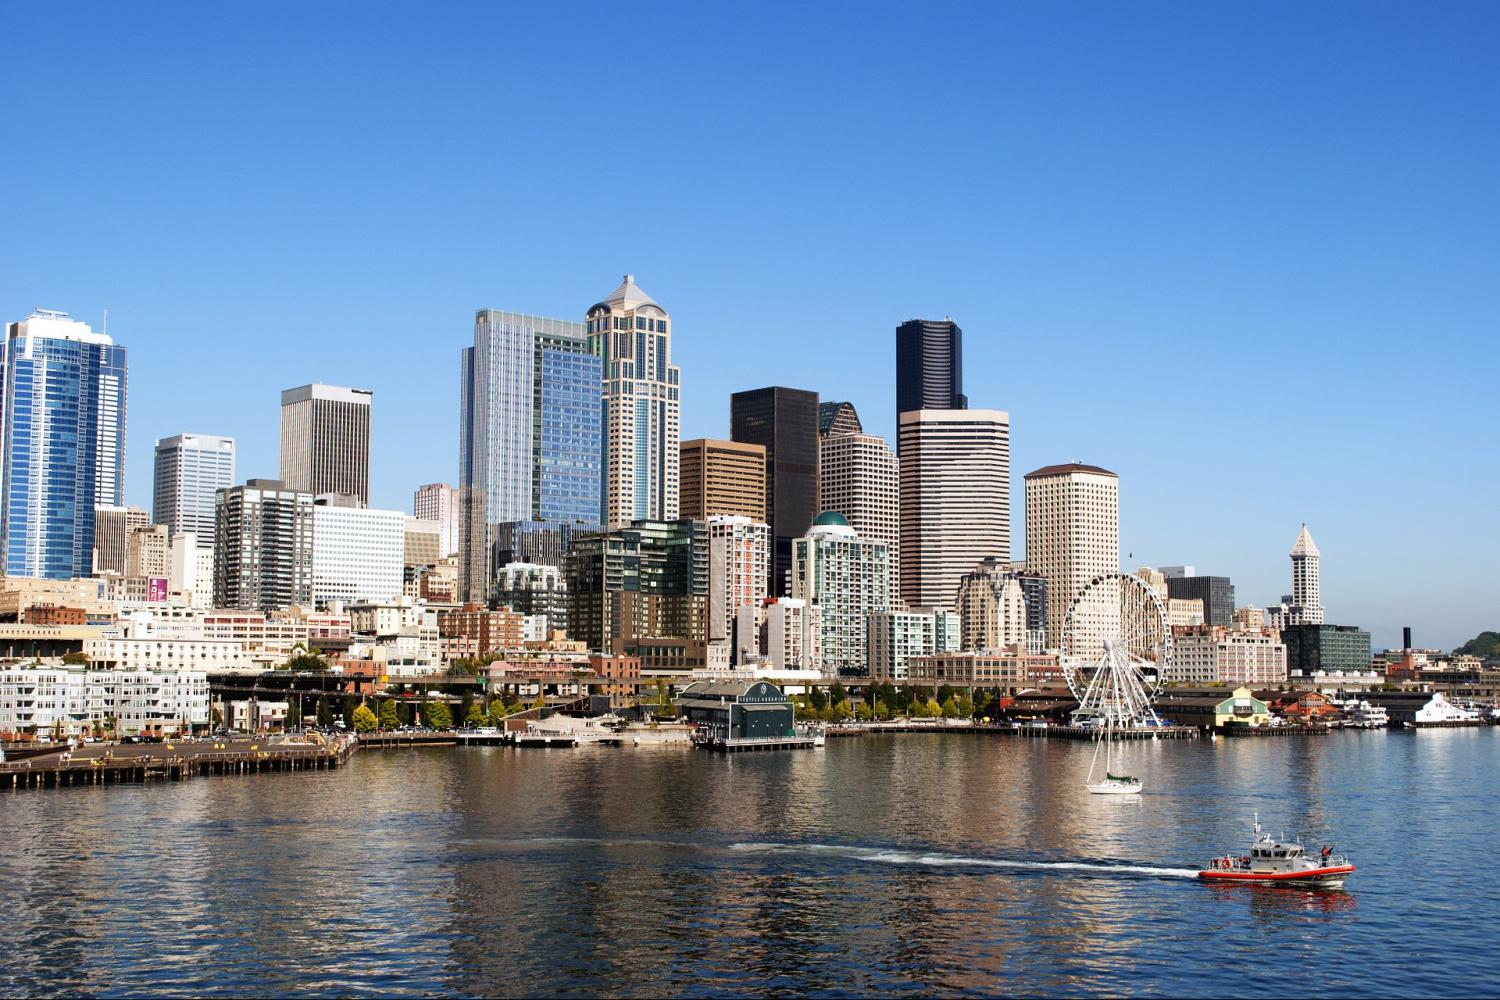 Seattle Hop-On Hop-Off Tour & Harbor Cruise